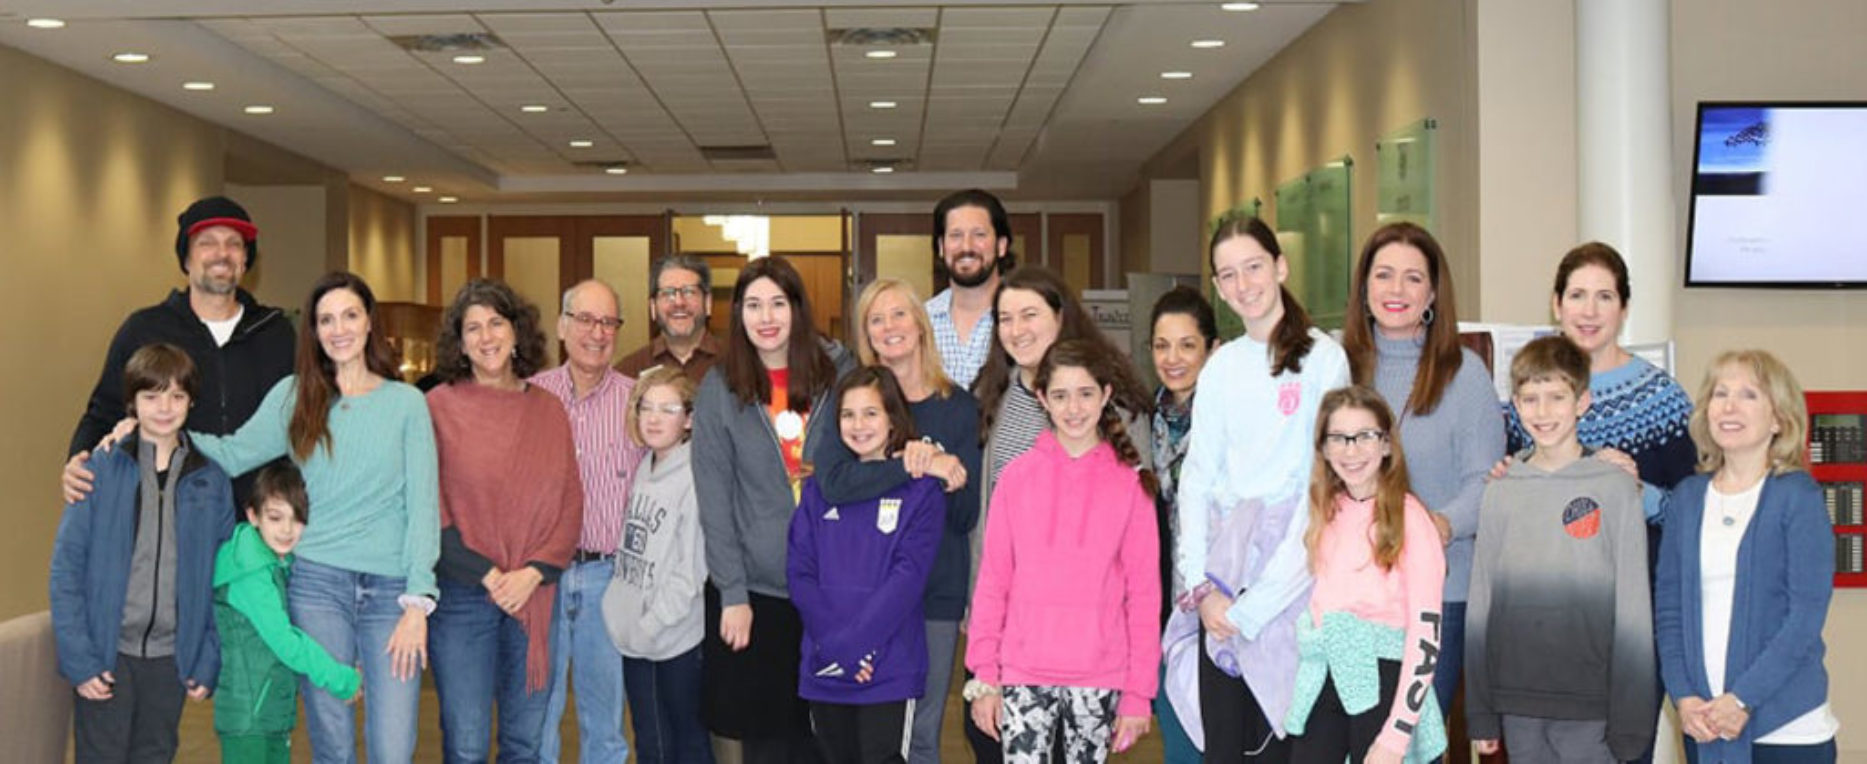 Homepage Mitzvah Afternoon Feb 2019